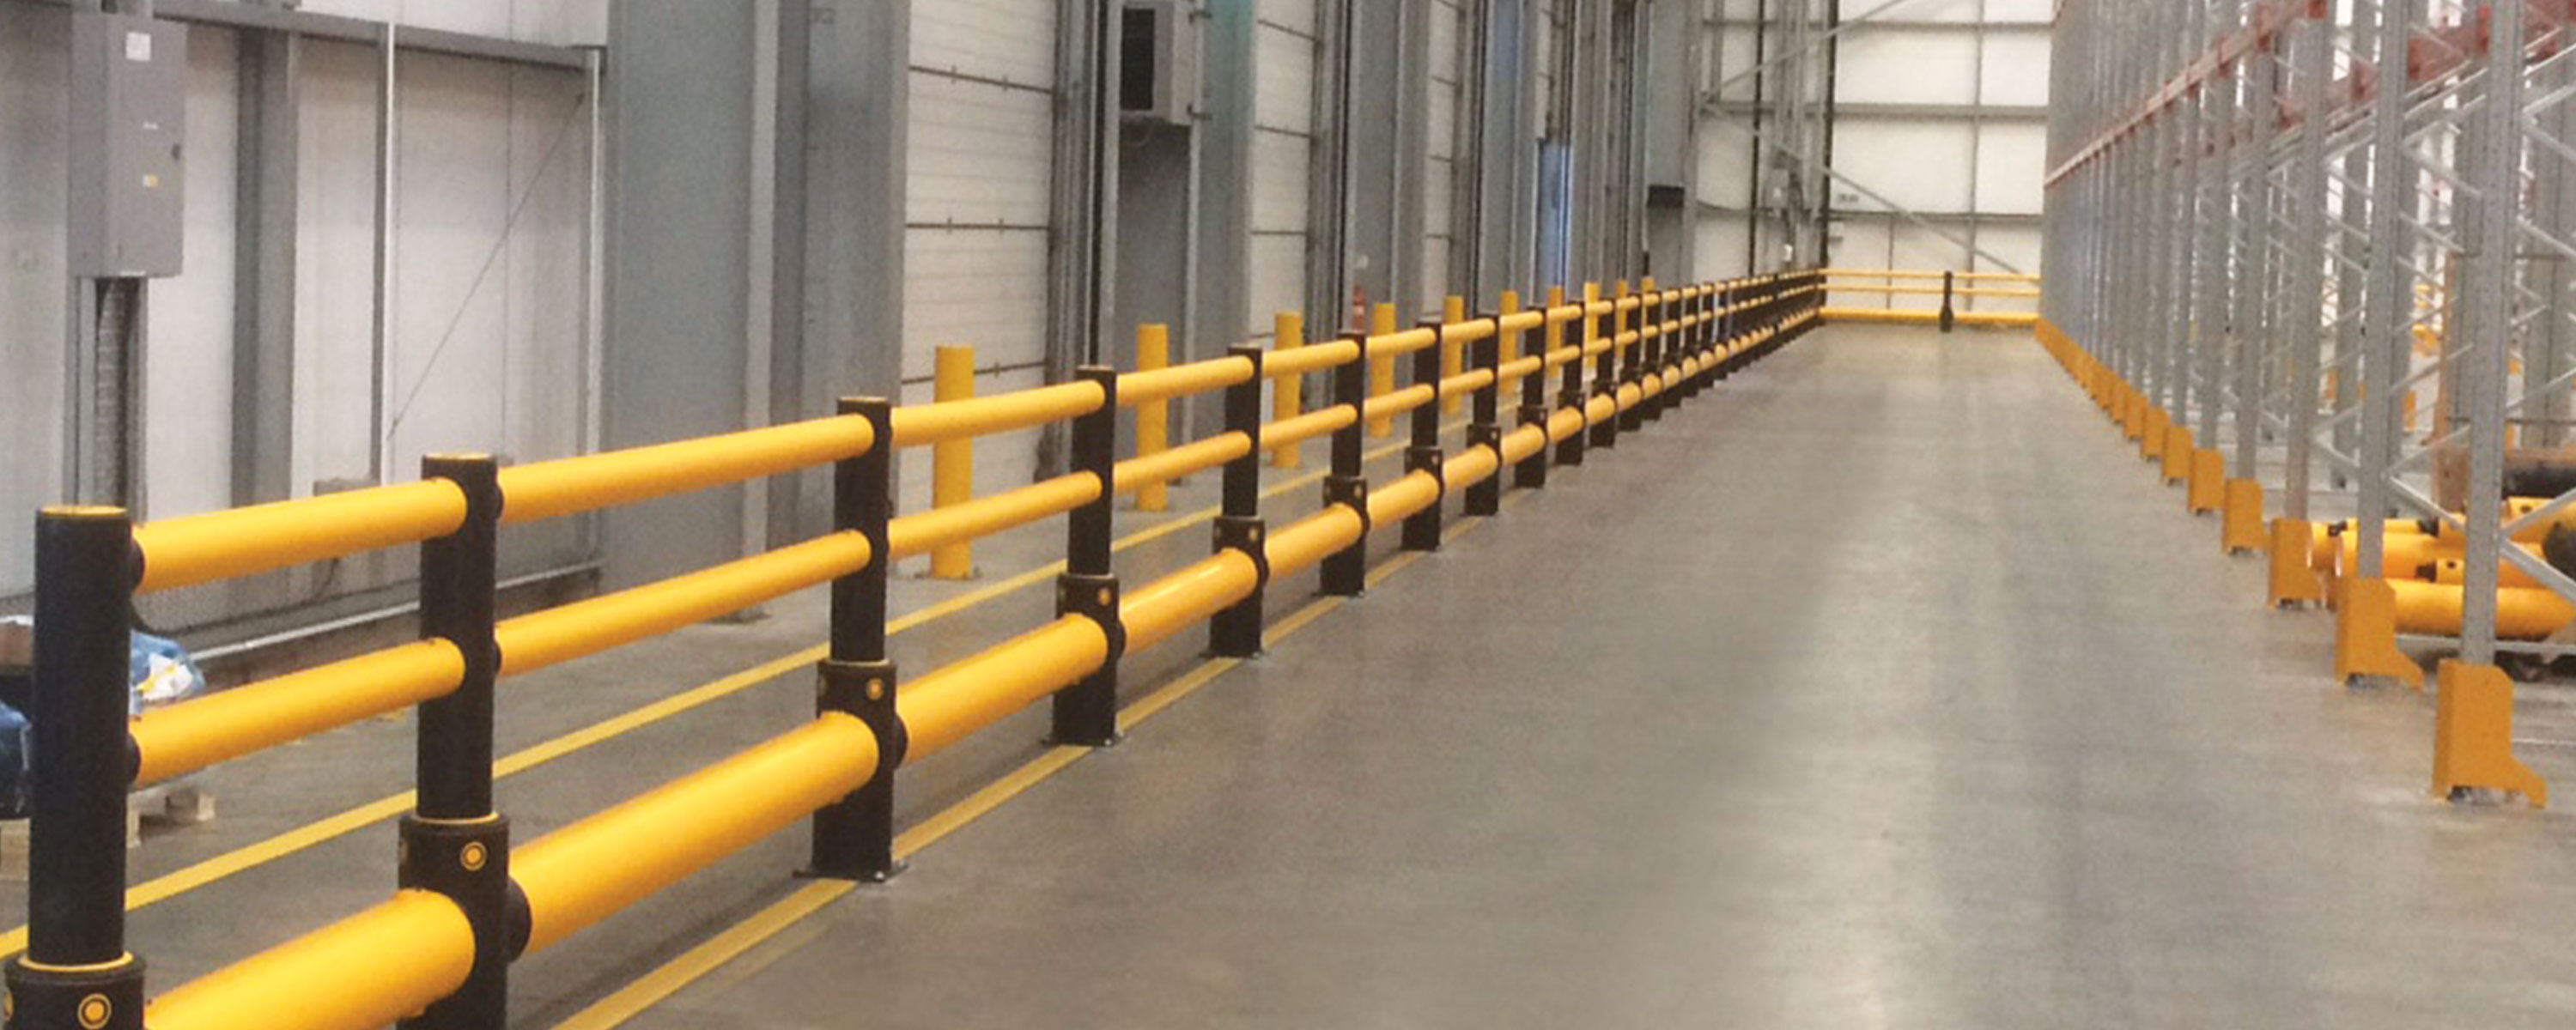 <p>Warehousing | Combined traffic protection and pedestrian segregation at DHL</p>